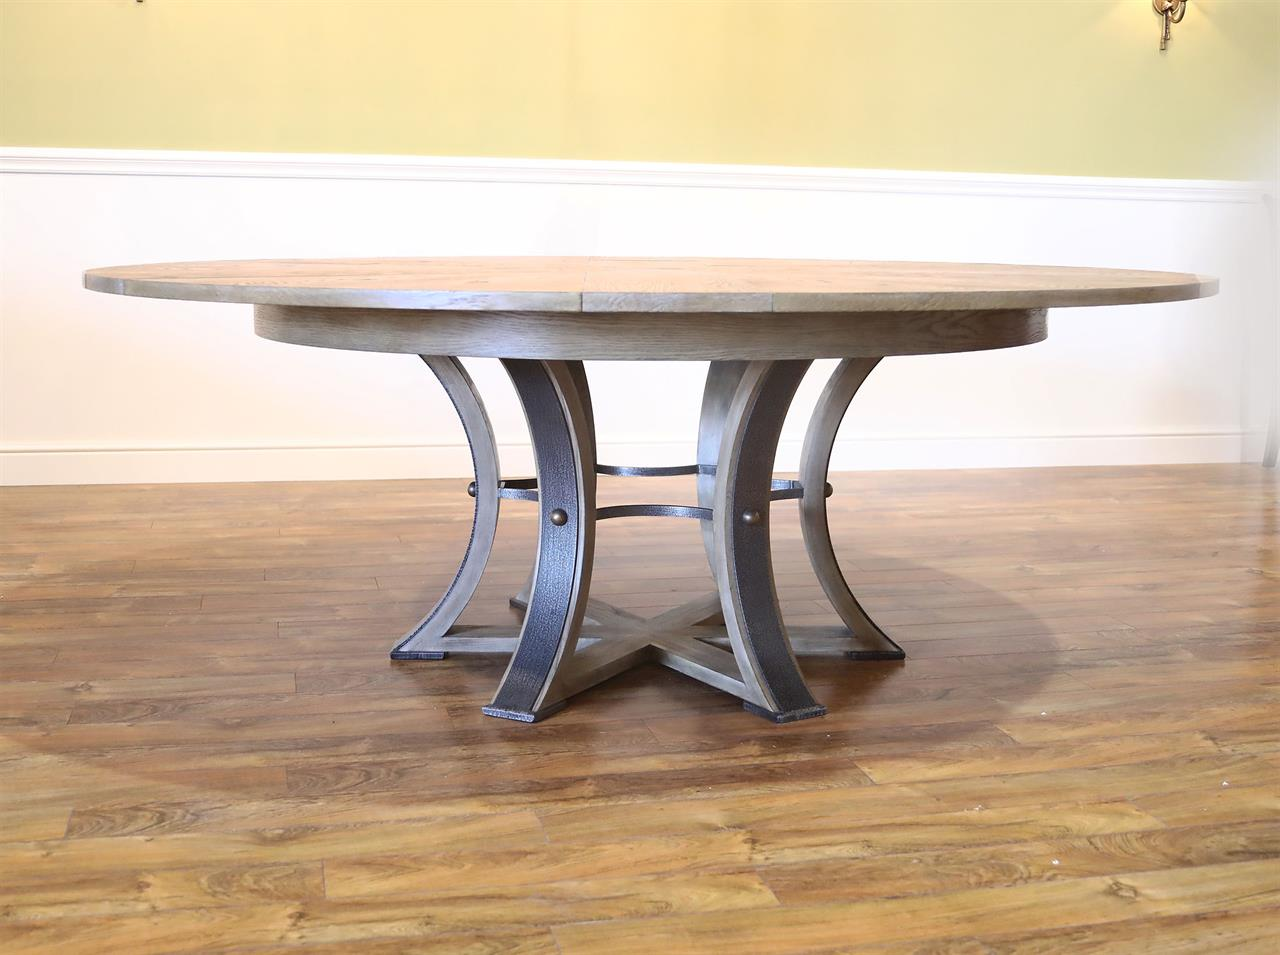 Transitional Jupe Table for 8 to 12 People, Saber legs, Hammered Pede